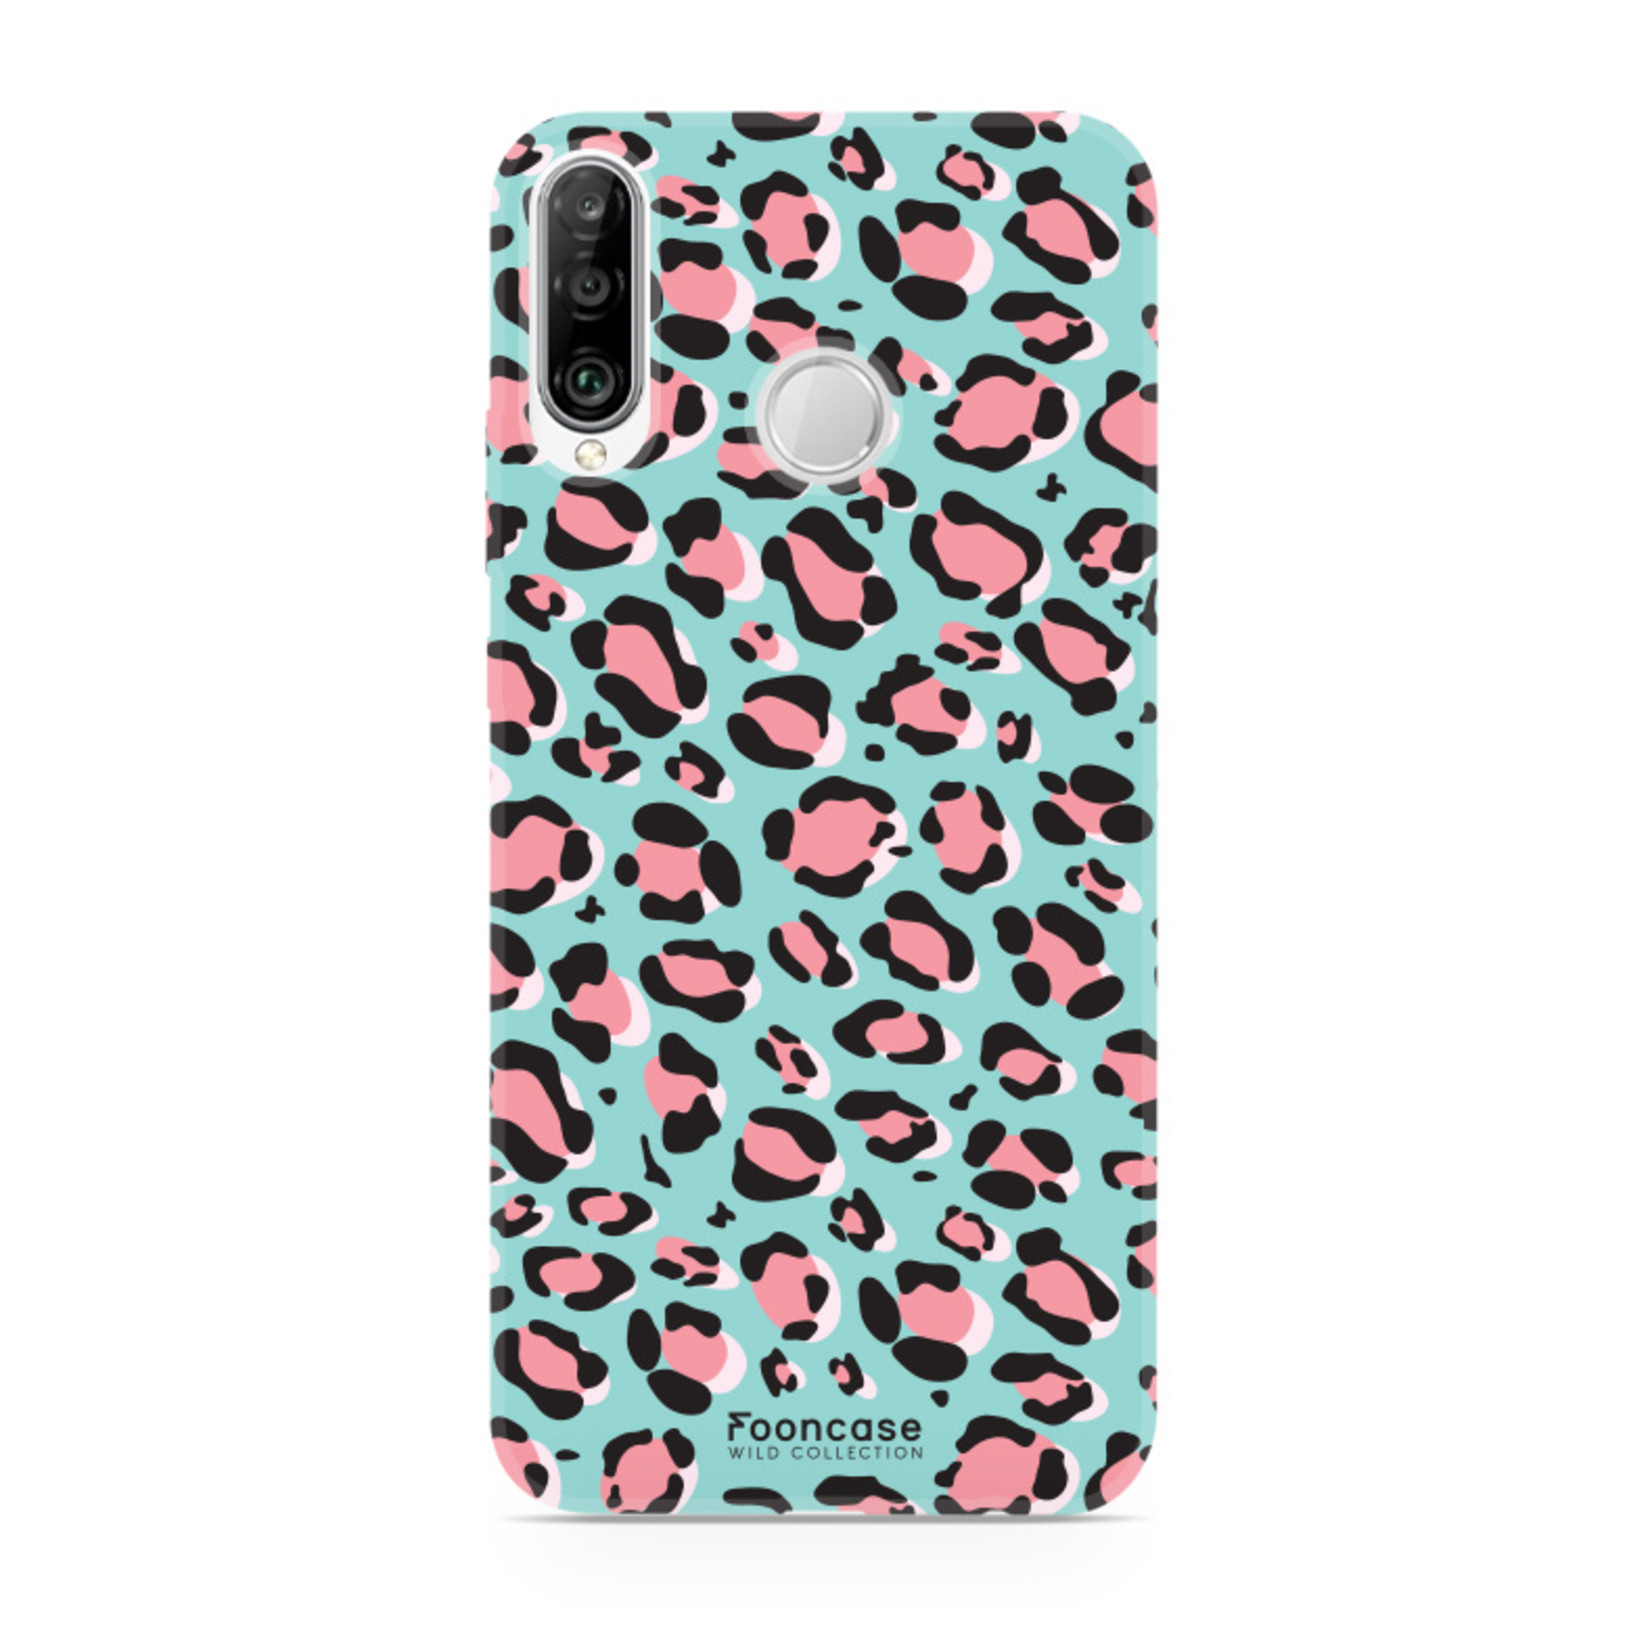 FOONCASE Huawei P30 Lite hoesje TPU Soft Case - Back Cover - WILD COLLECTION / Luipaard / Leopard print / Blauw